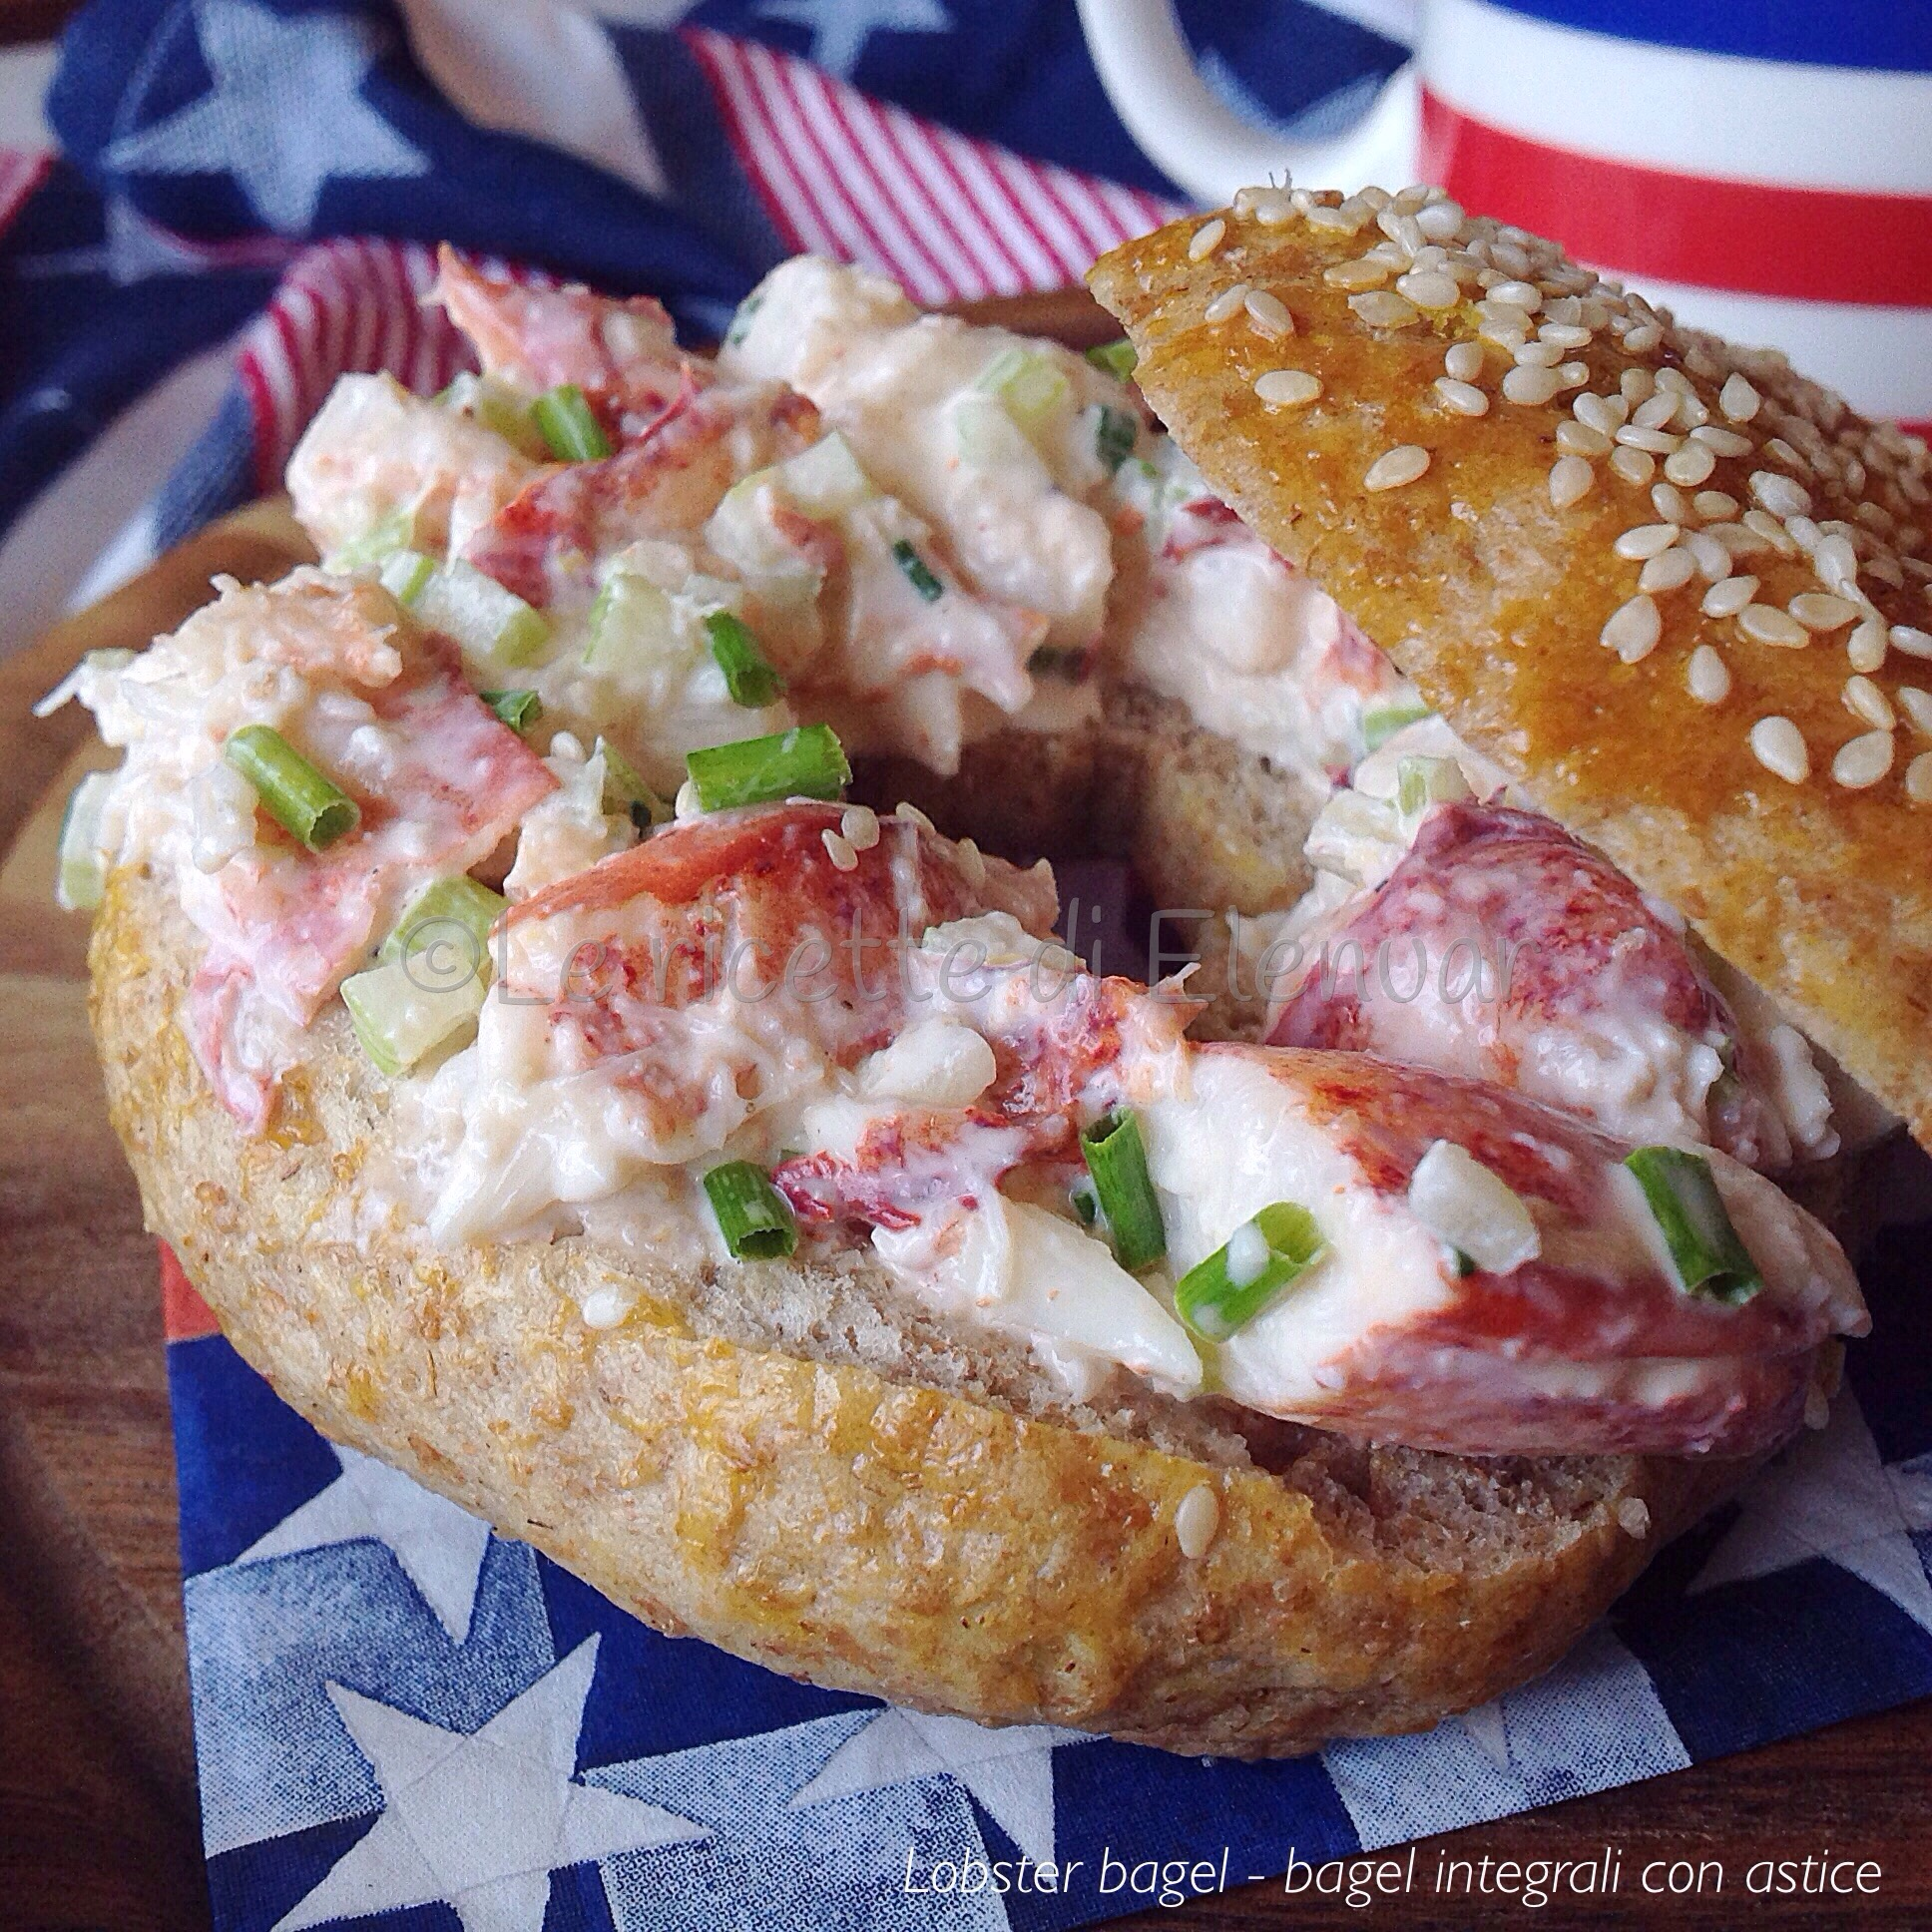 LOBSTER BAGEL - Bagel integrali con astice